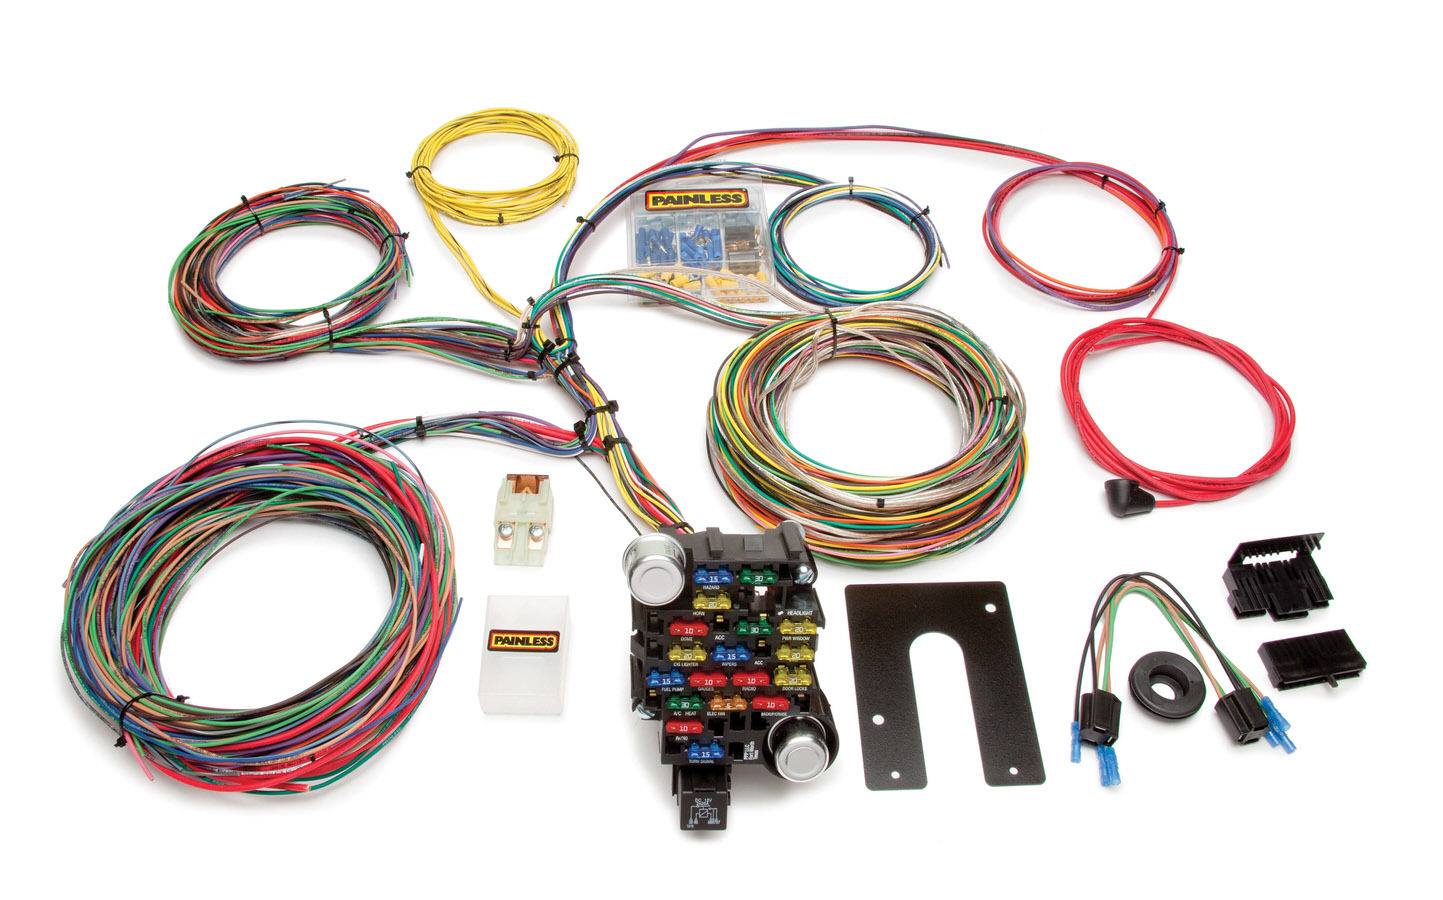 Painless Wiring 10202 Car Wiring Harness, Classic-Plus Customizable, Complete, 28 Circuit, Universal, Kit